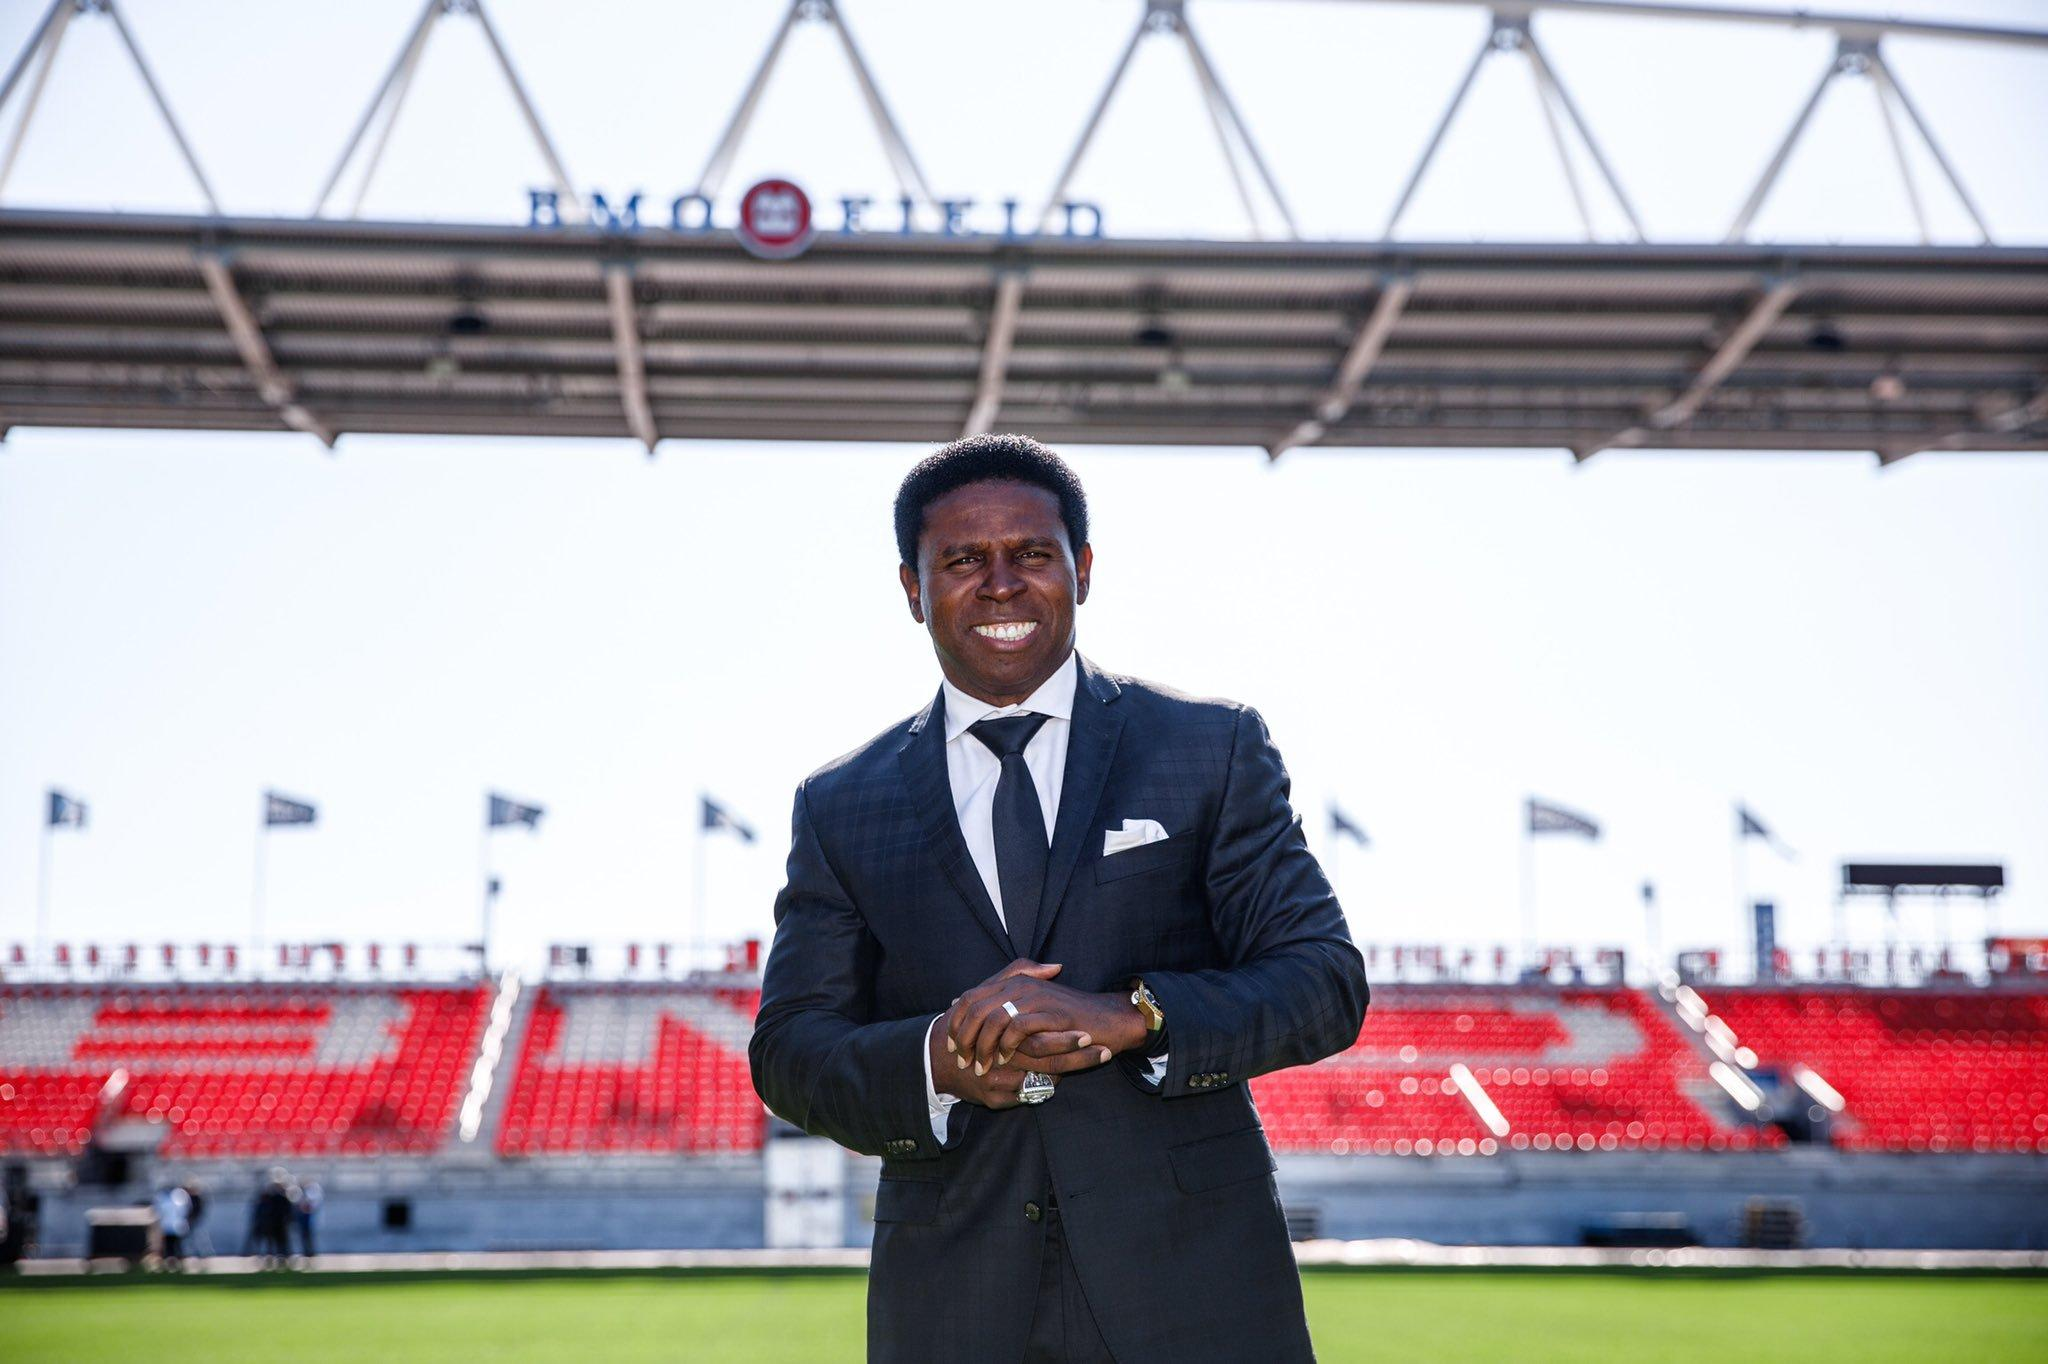 am800-sports-mike-pinball-clemons-toronto-argonauts-cfl-october-2019